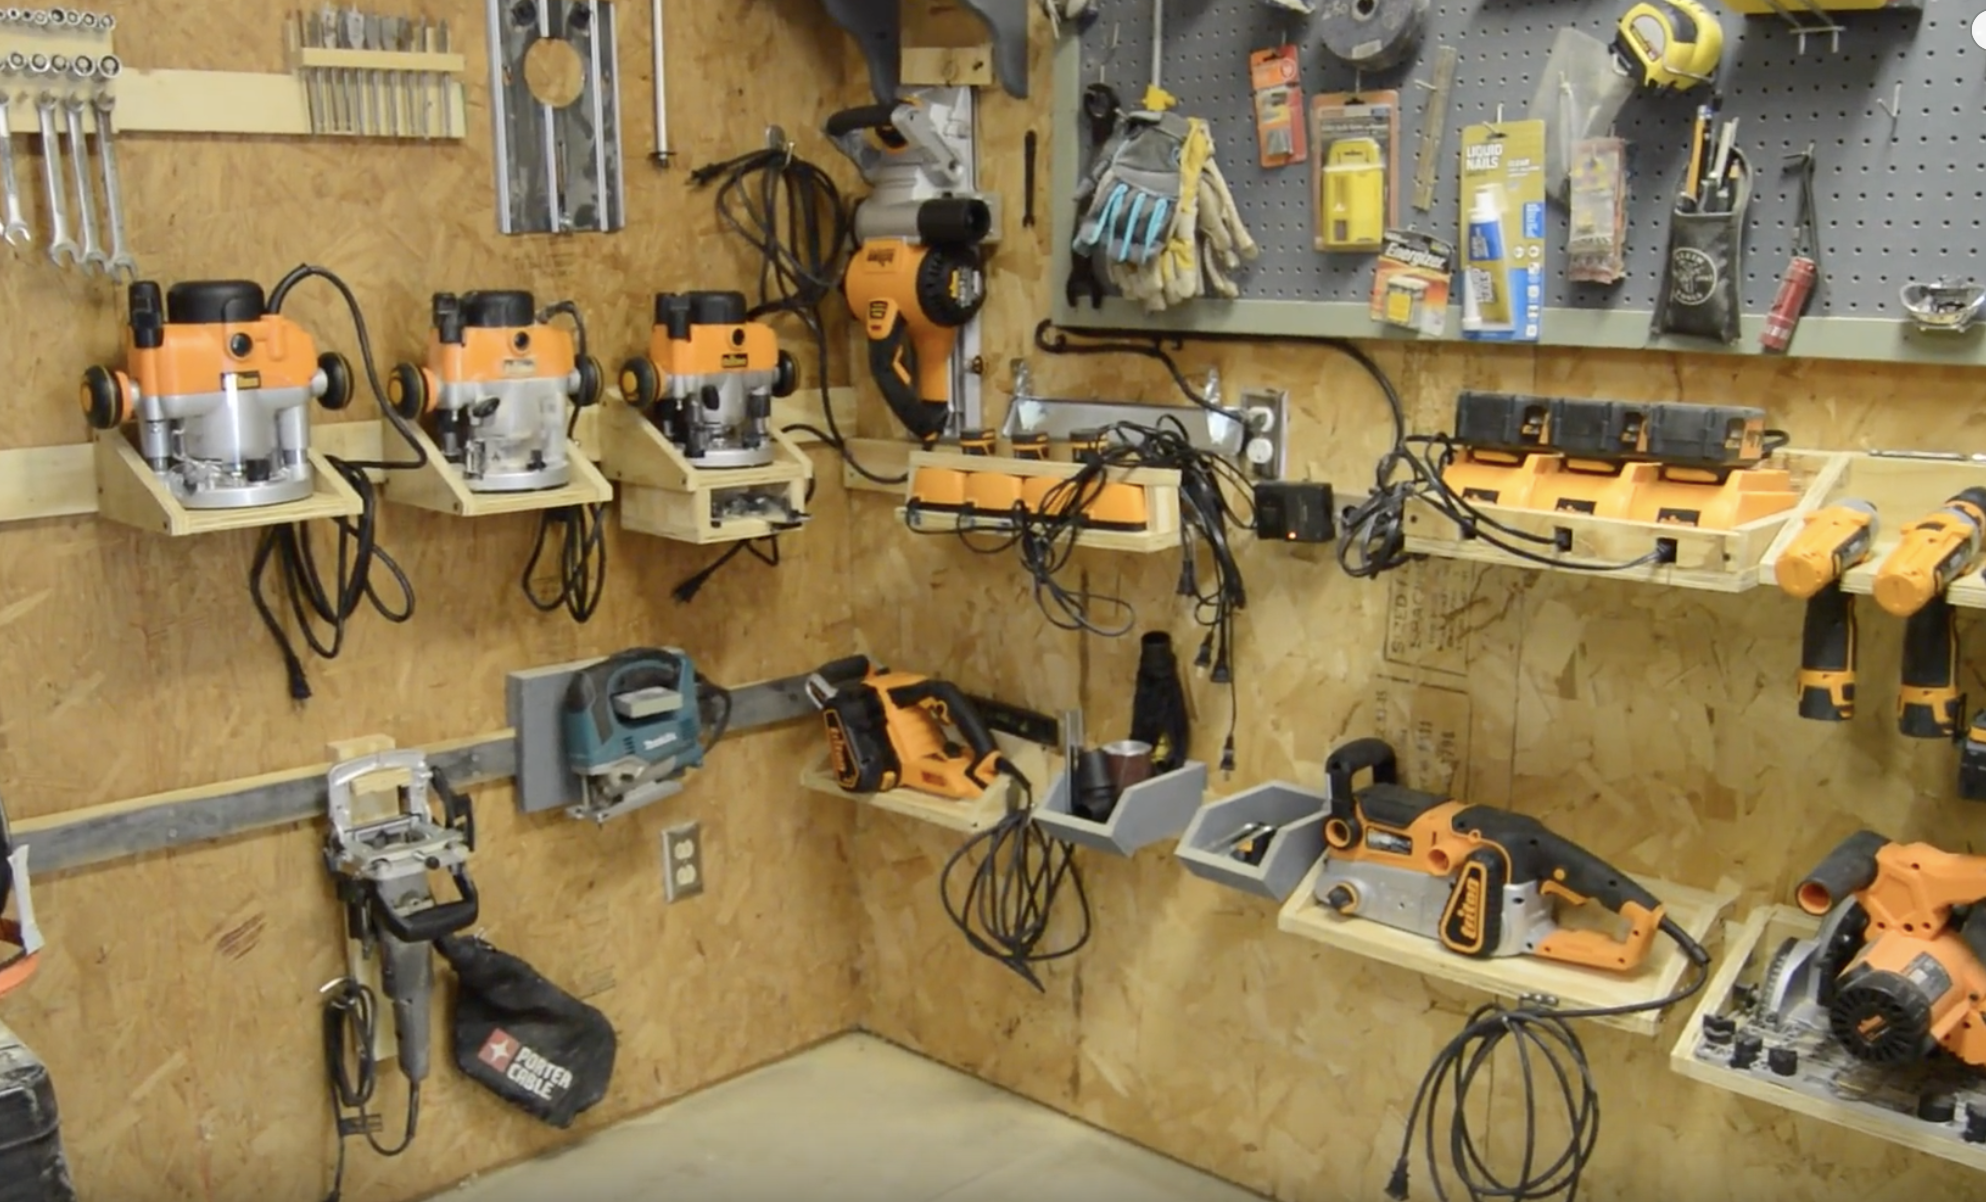 How To Build A French Cleat System For Power Tools Frenchcleat Frenchcleatpowertools Powertools Shoppro French Cleat System French Cleat Diy Garage Storage